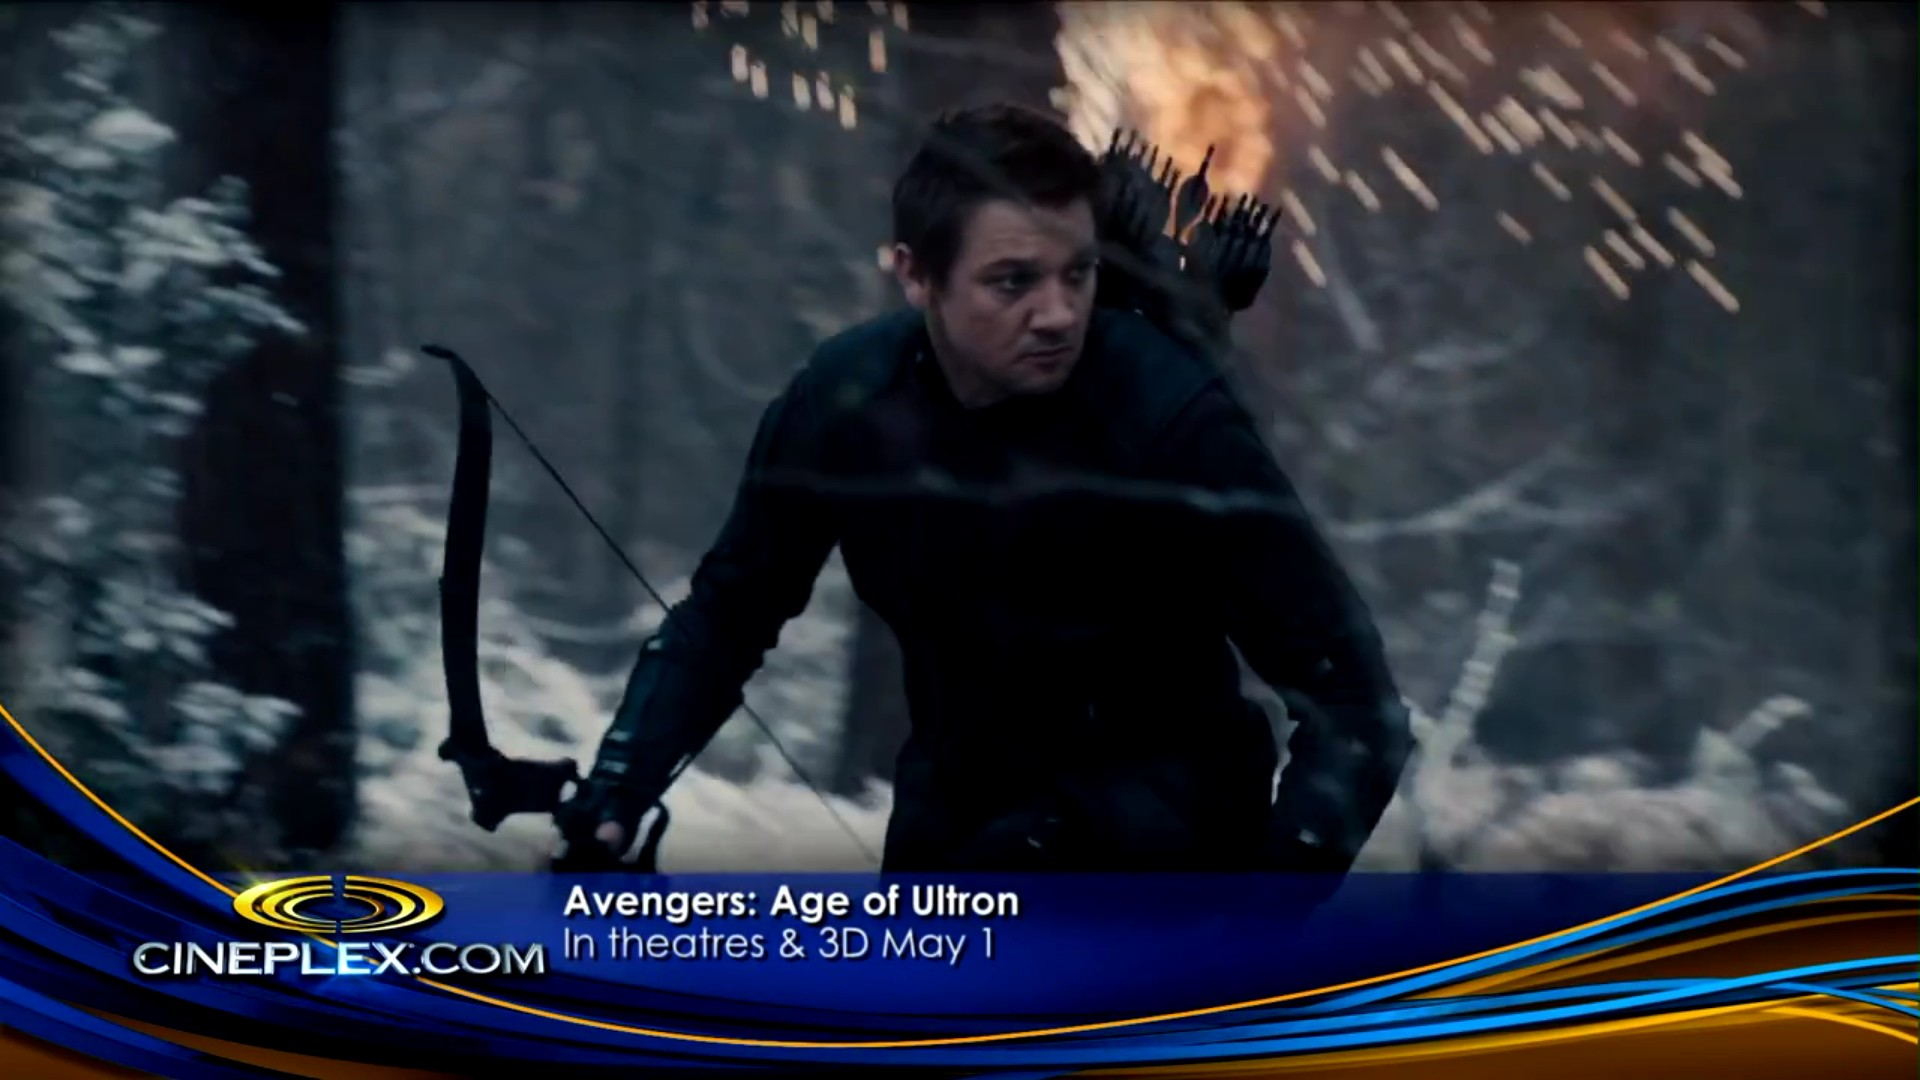 Exclusive_-_Behind_the_Scenes_of_Avengers_Age_of_Ultron_Part_1_of_3[11-18-26].jpg